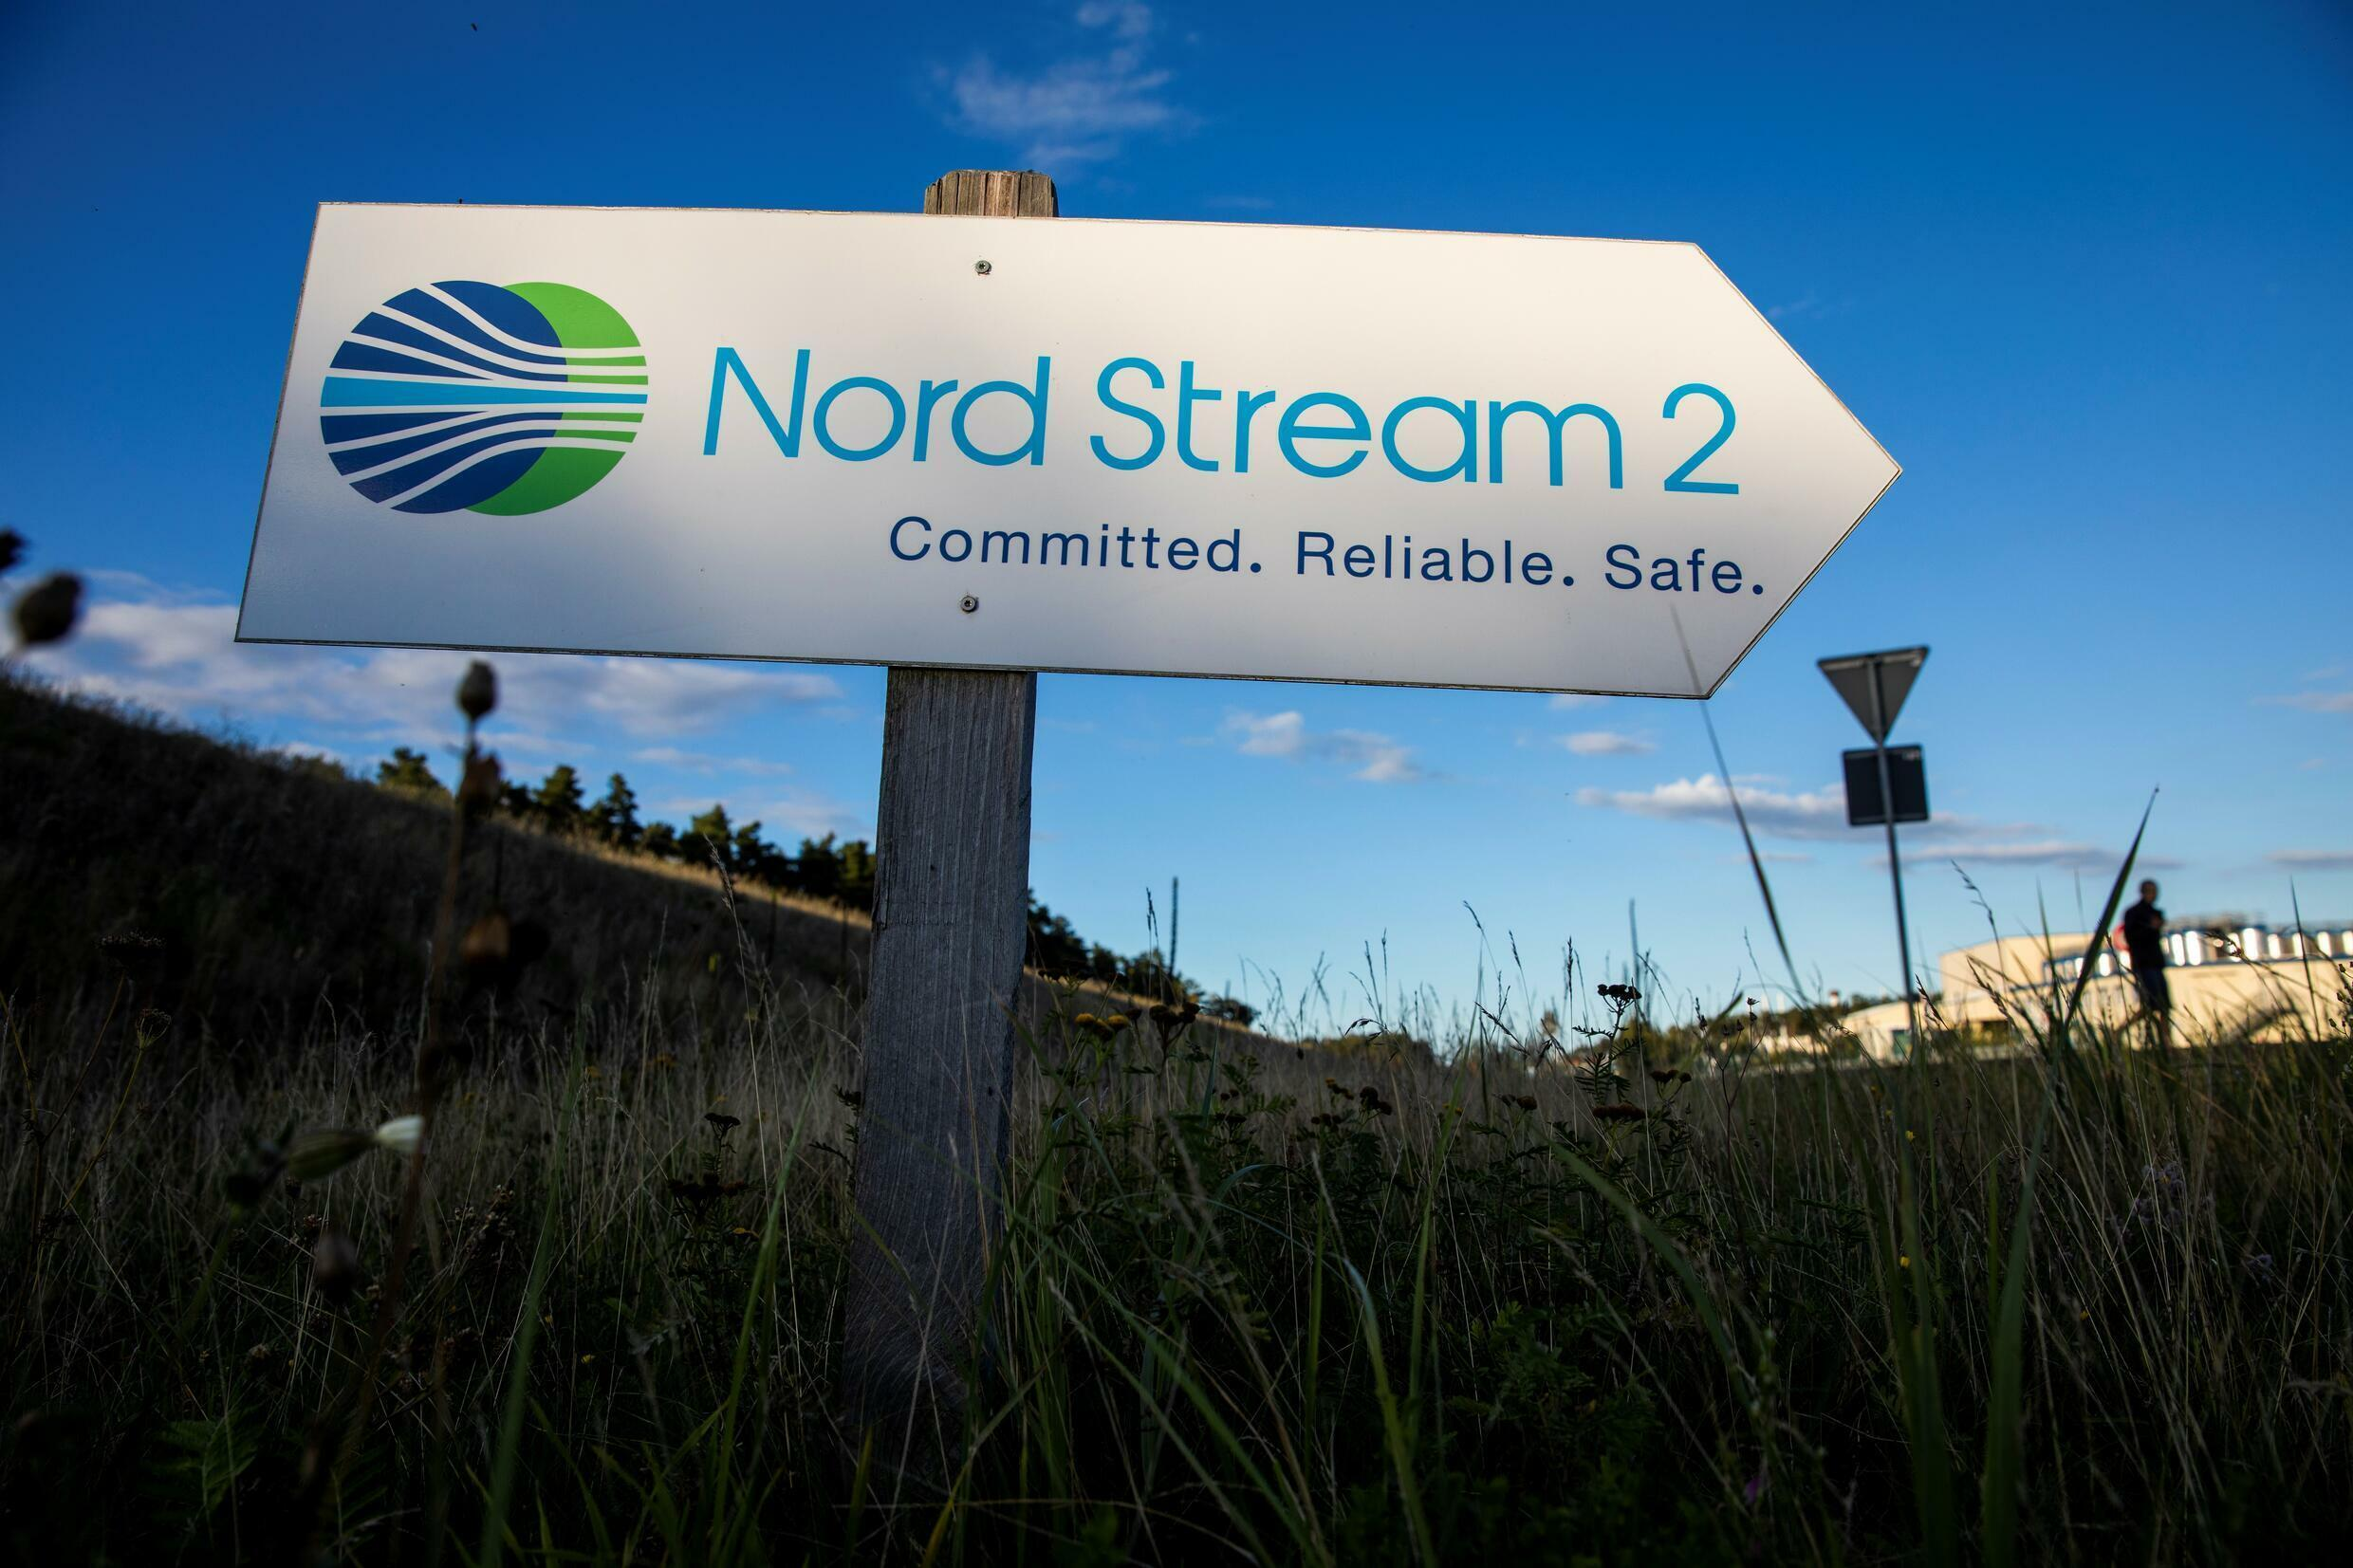 A road sign directs traffic towards the Nord Stream 2 gas line landfall facility entrance in Lubmin, north eastern Germany, in 2020